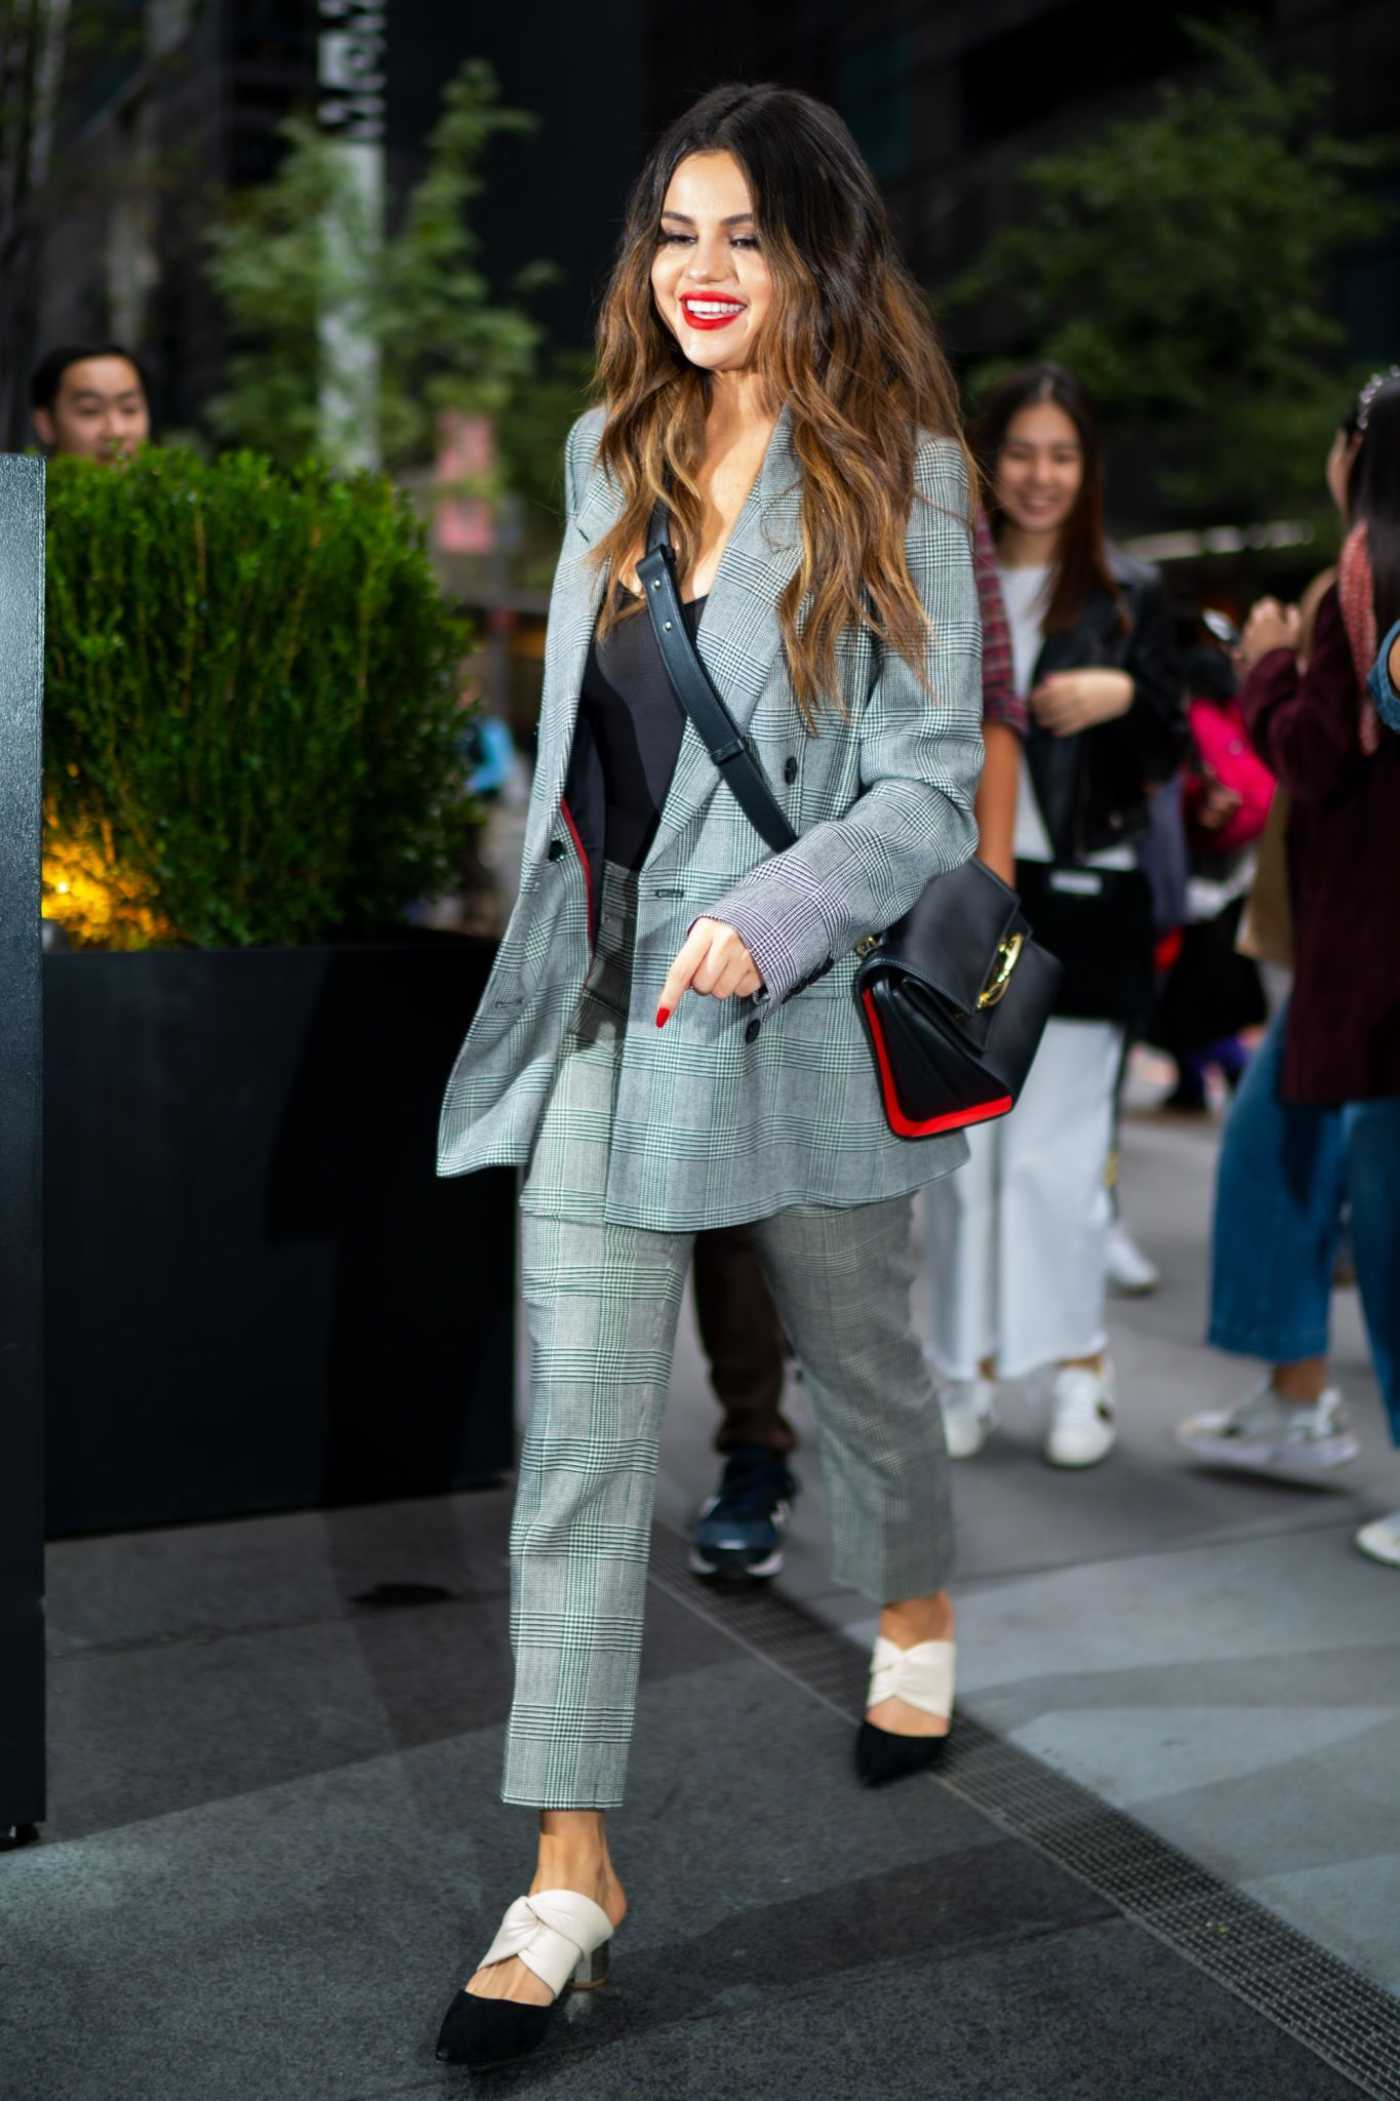 Selena Gomez in a Gray Suit Arrives at Her Hotel in NY 10/28/2019